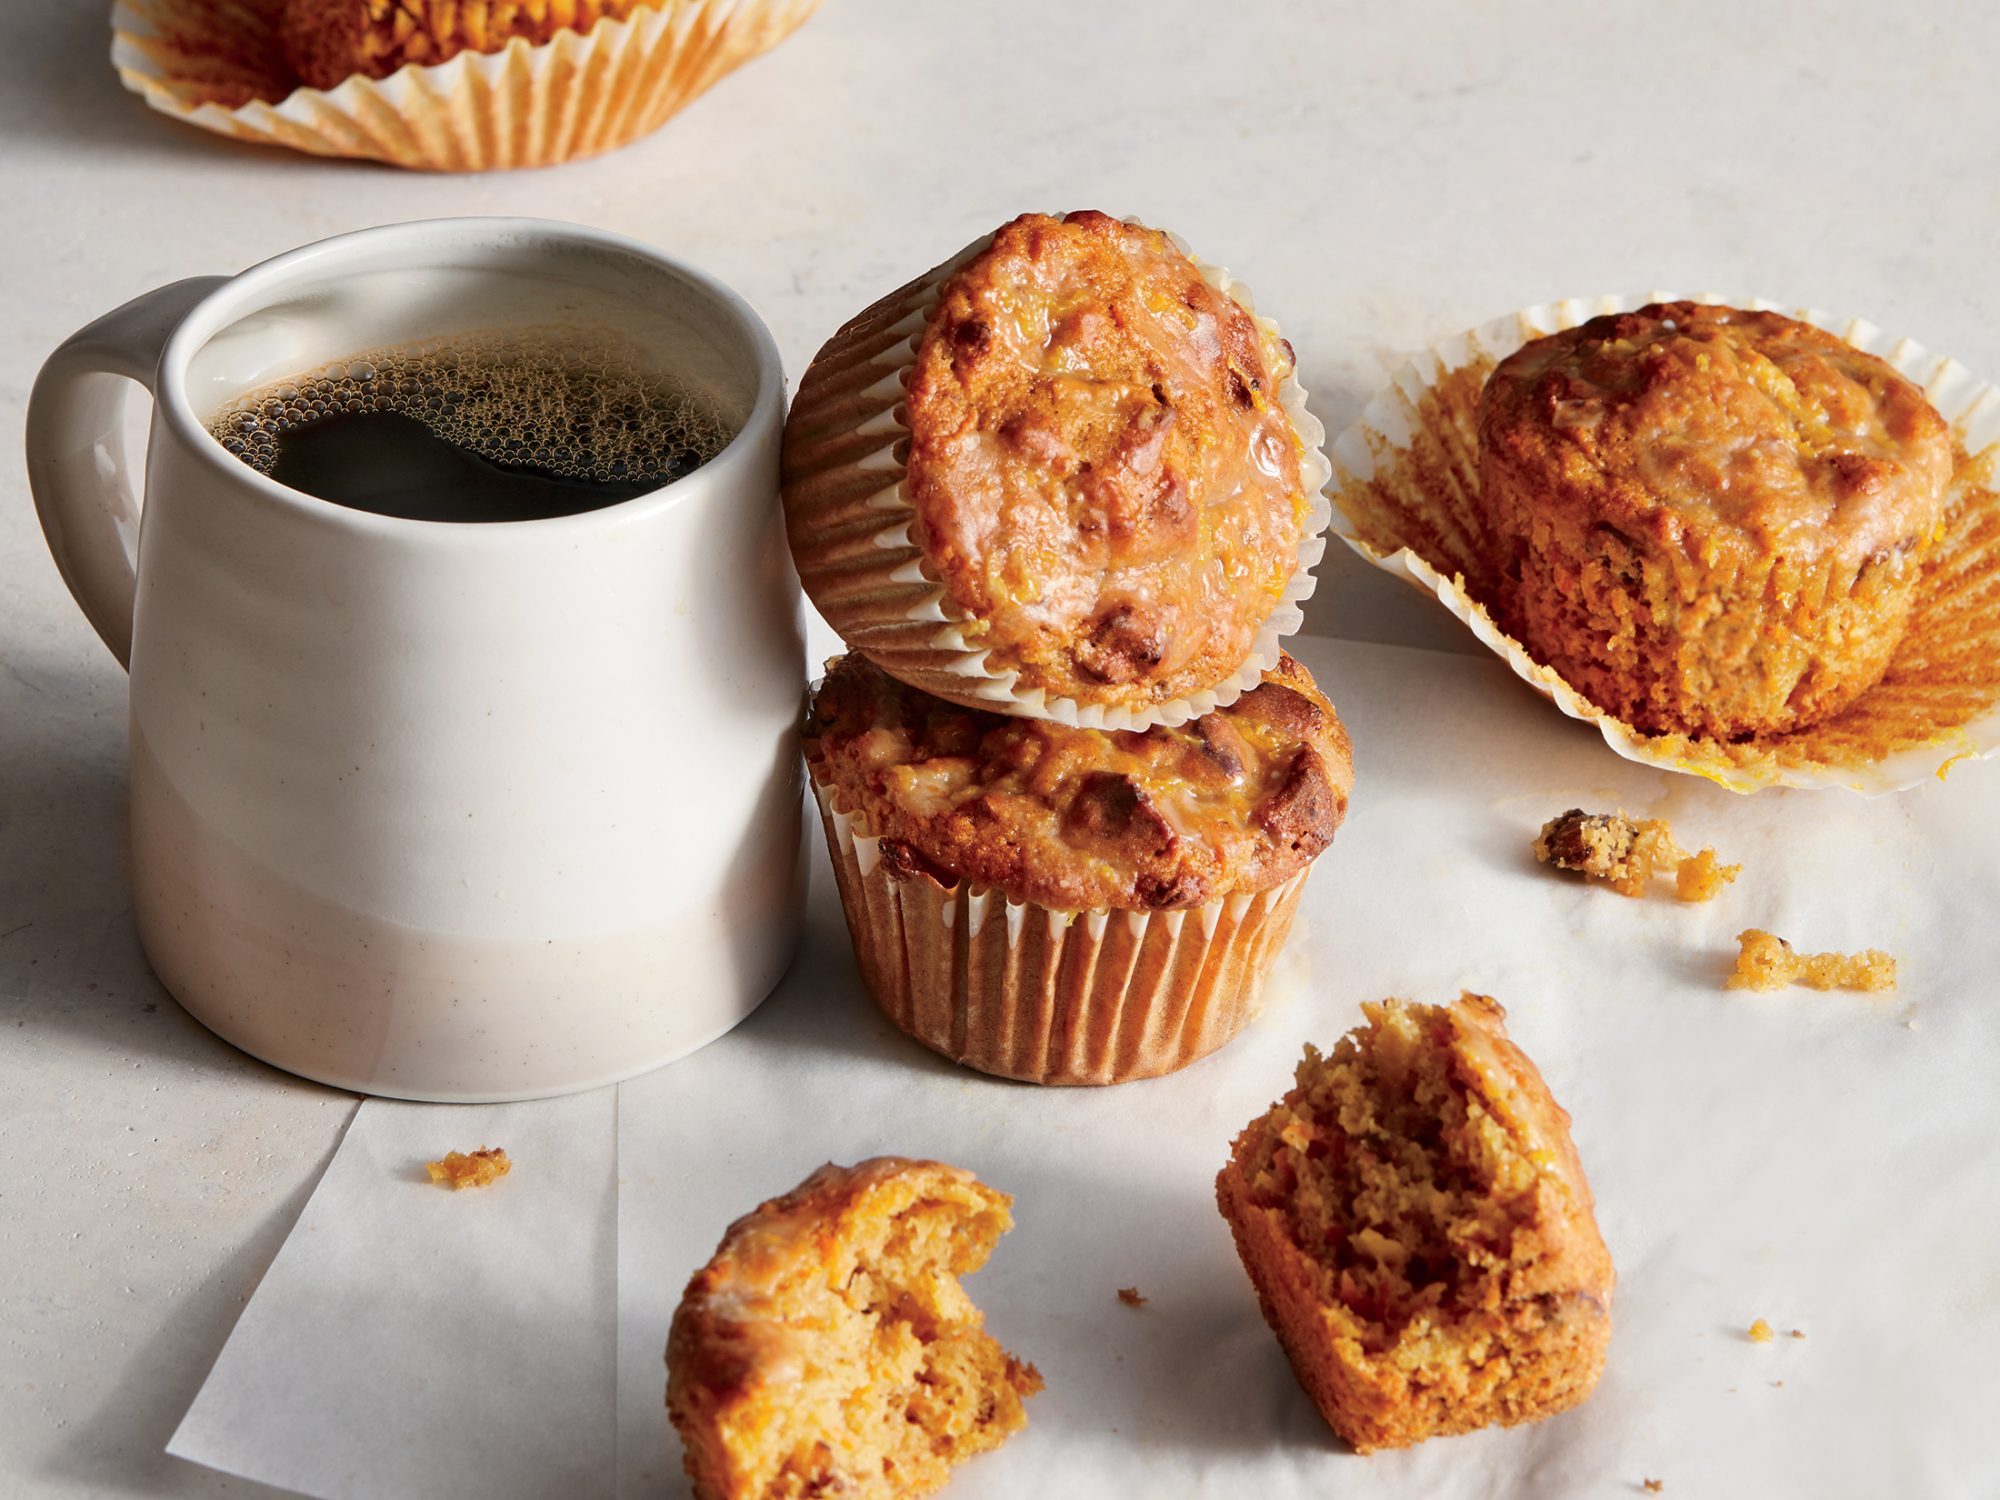 ck-Carrot-Apple Muffins With Orange Glaze